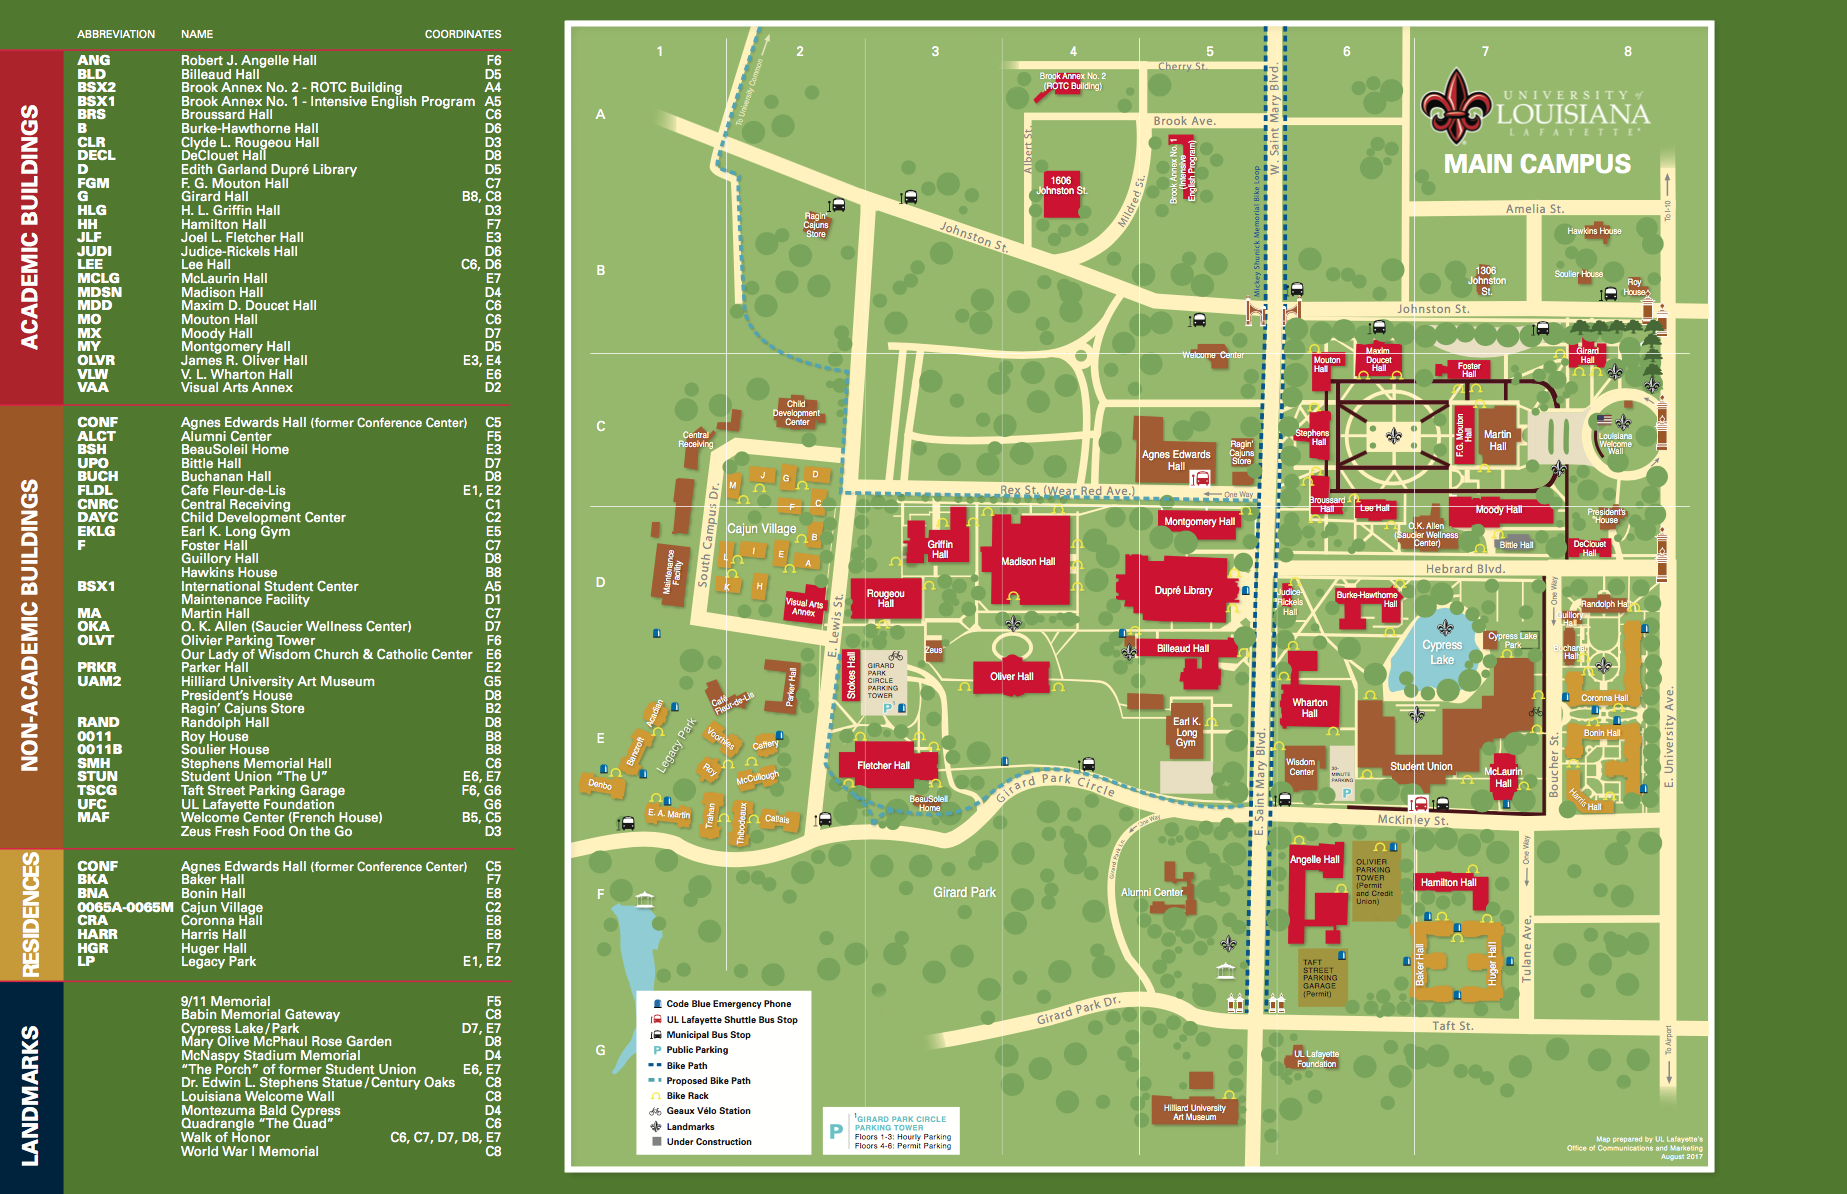 Ull Campus Map Ull Campus Map | States Maps